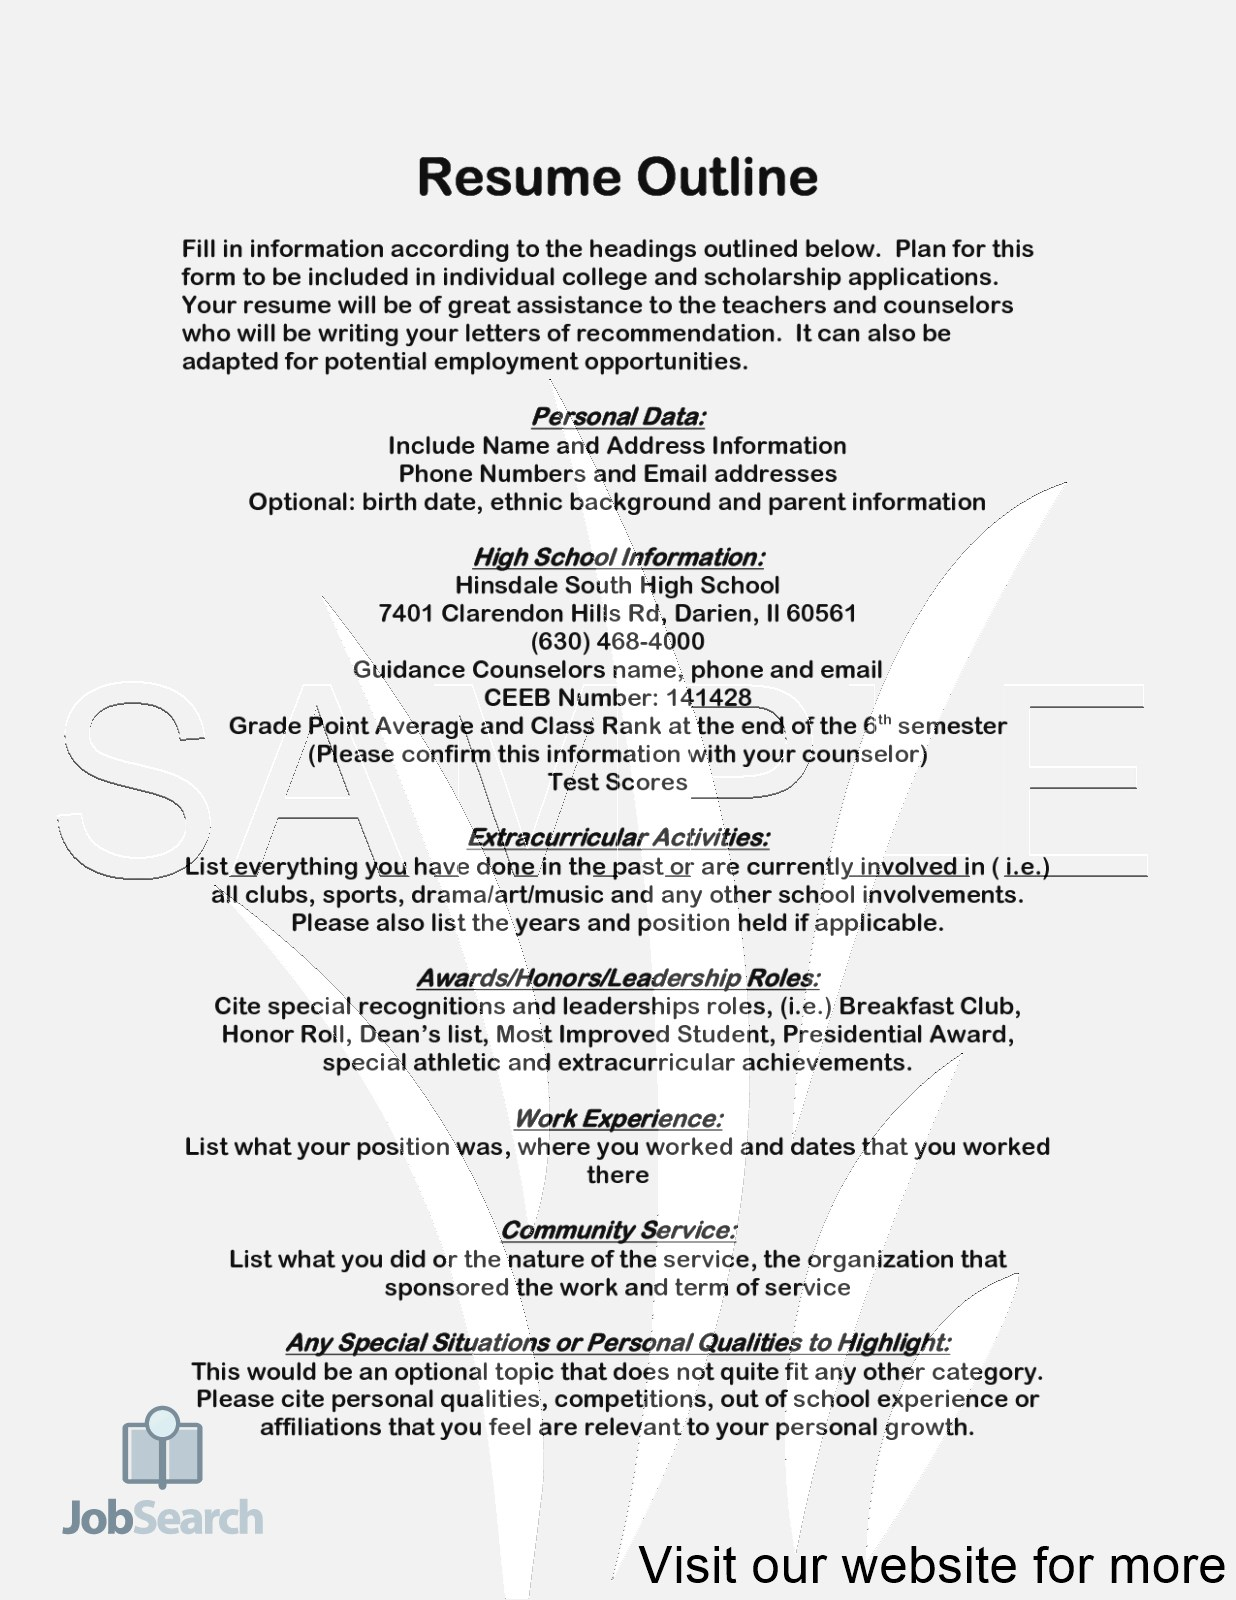 Scholarship Resume Template Google Docs